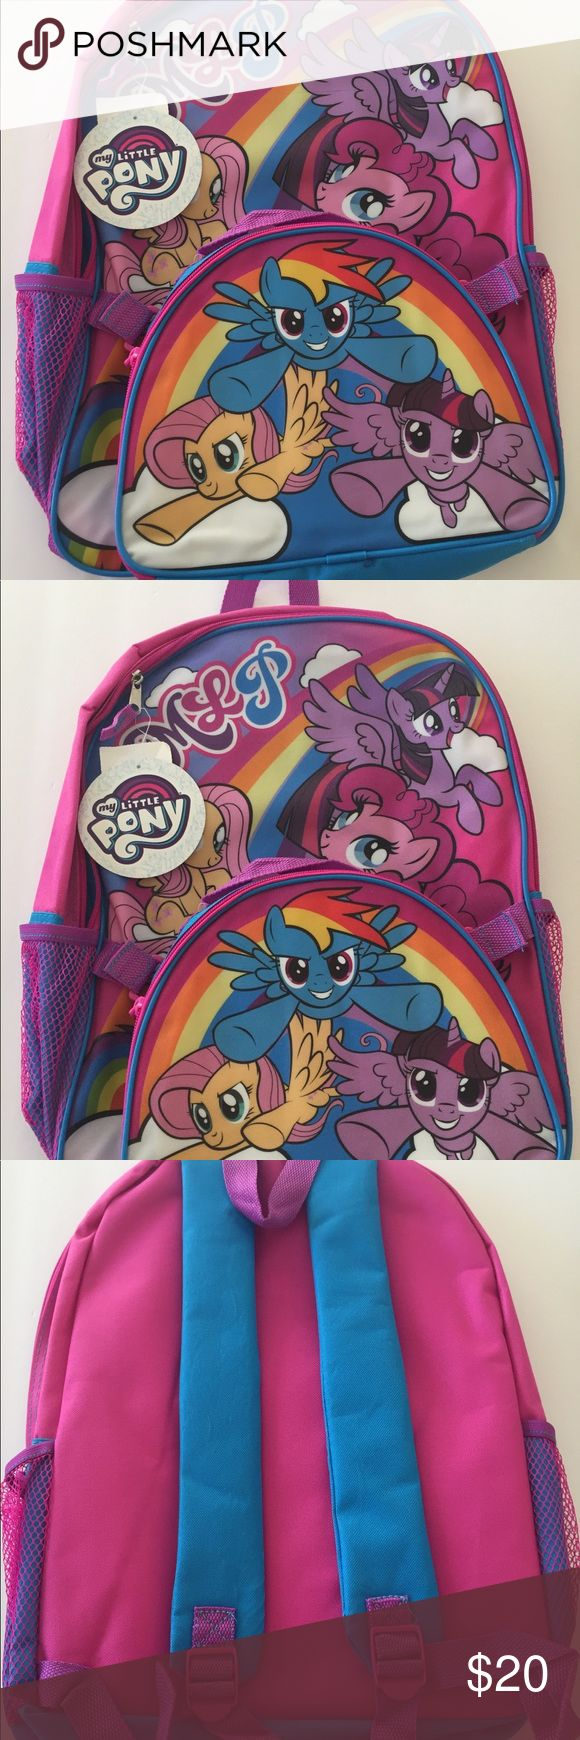 My Little Pony Girls Backpack Lunch Box Set NWT My Little Pony Girls School Backpack Lunch Box Set NWT My Little Pony Accessories Bags